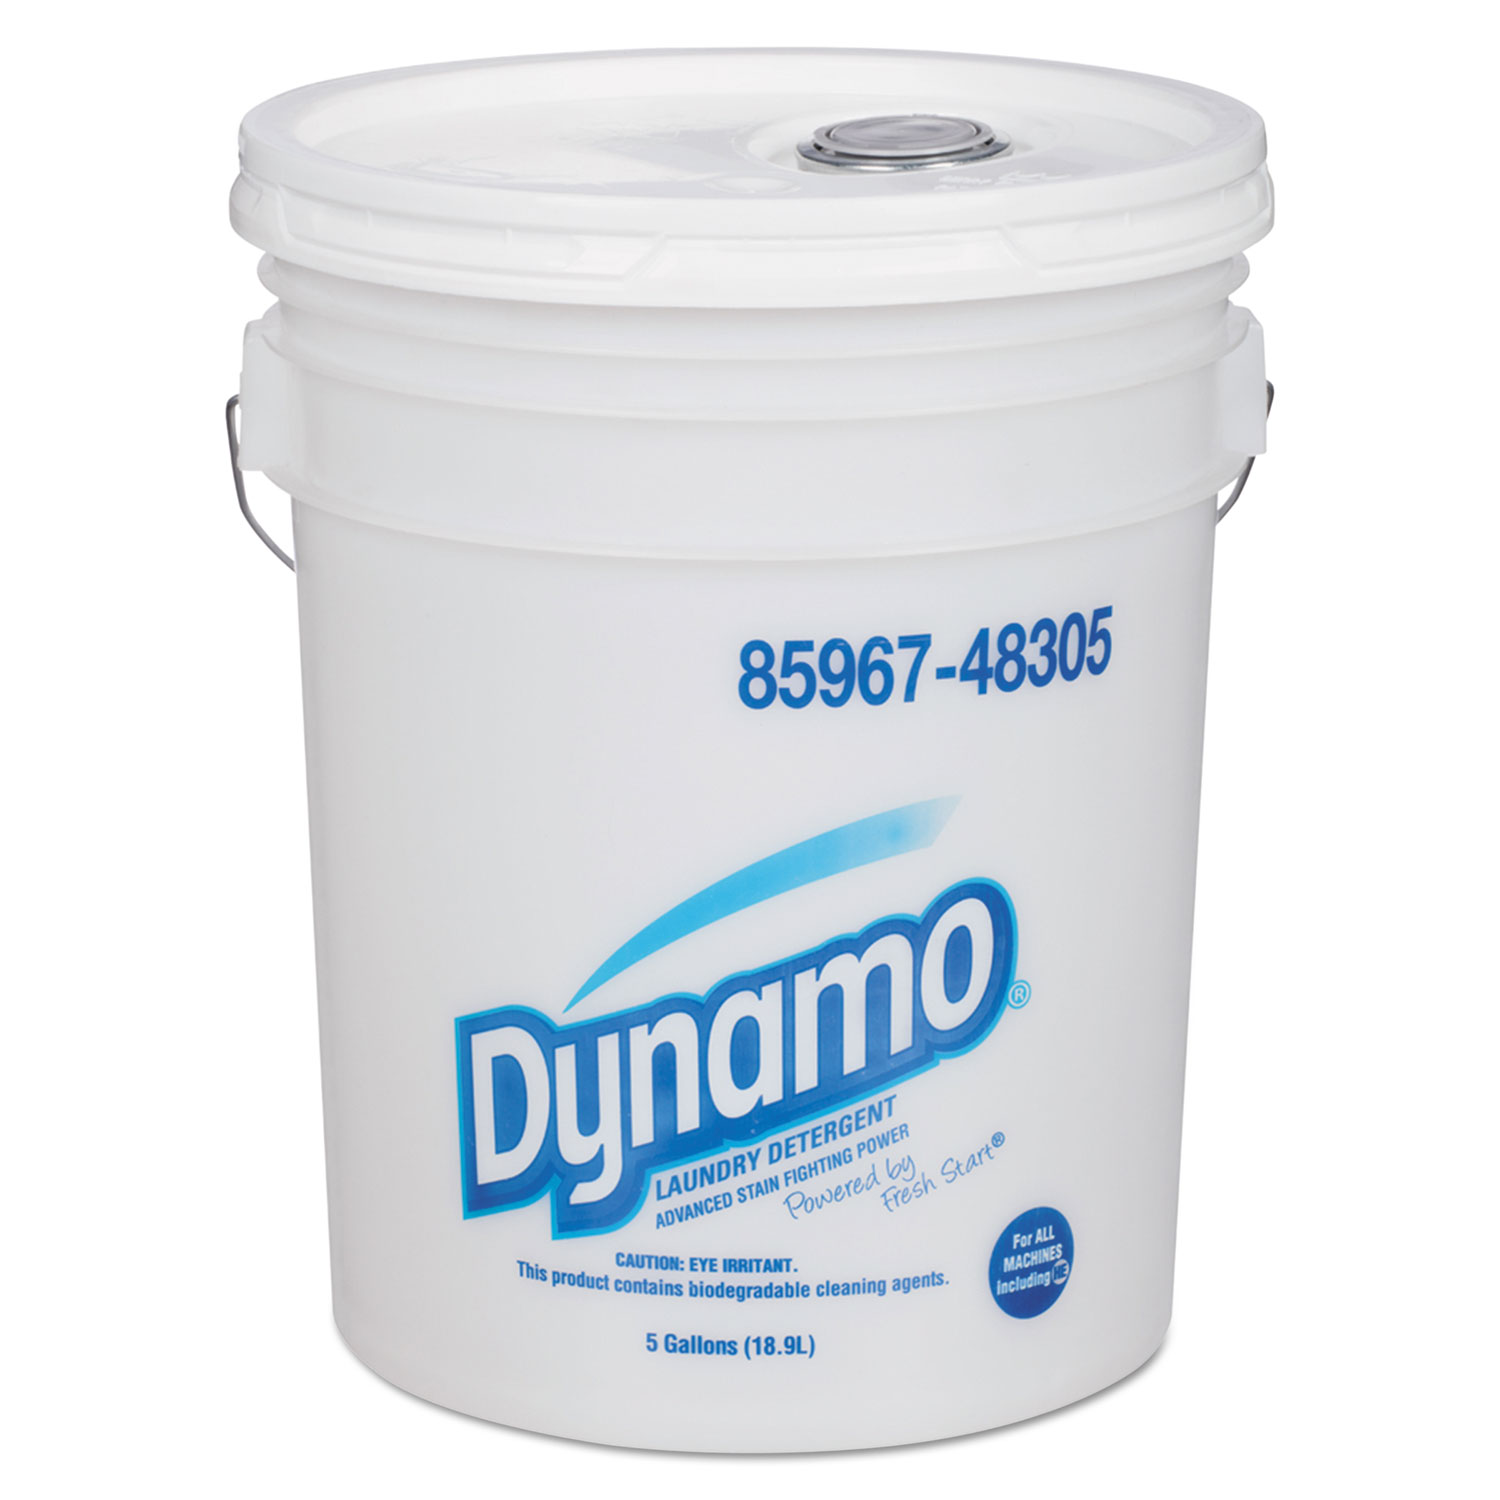 Industrial-Strength Detergent, 5gal Pail